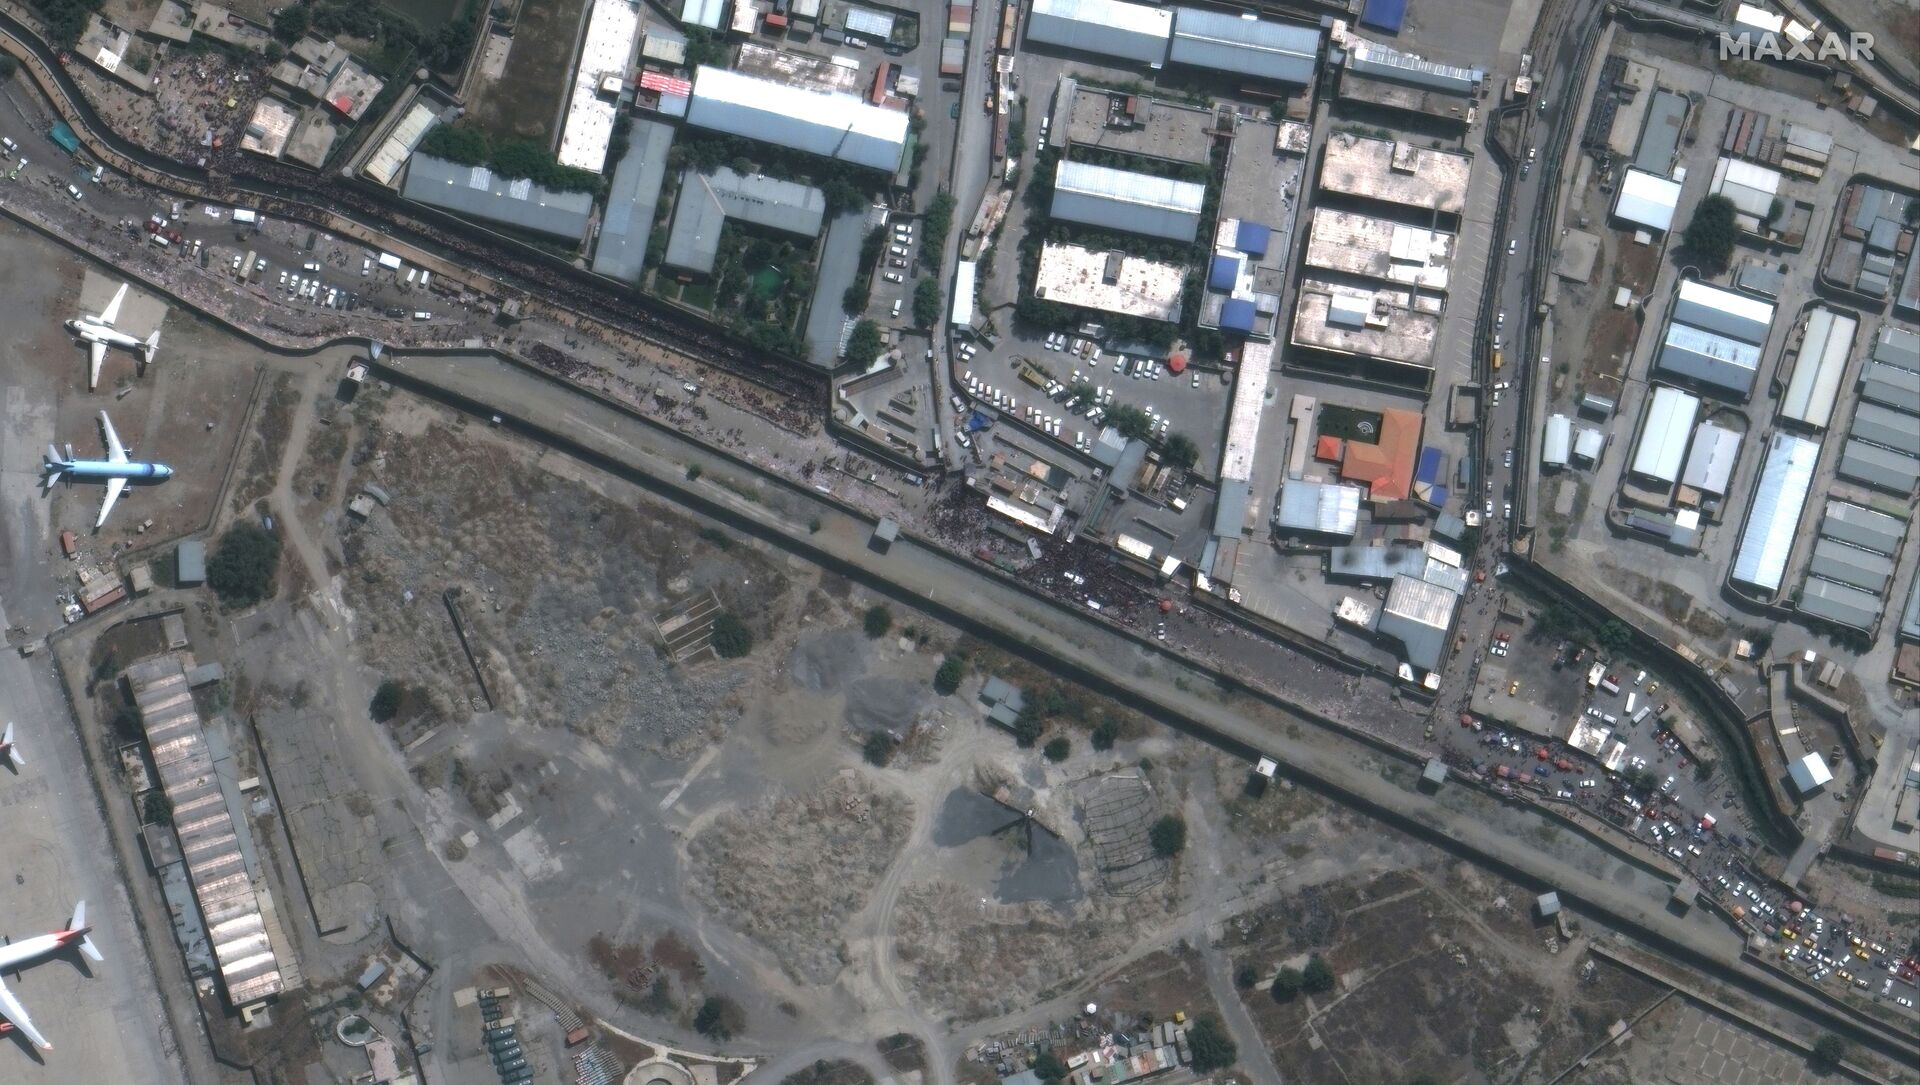 An overview of the Abbey Gate at Hamid Karzai International Airport, in Kabul, Afghanistan August 23, 2021, in this satellite image obtained by Reuters on August 26, 2021. - Sputnik International, 1920, 26.08.2021